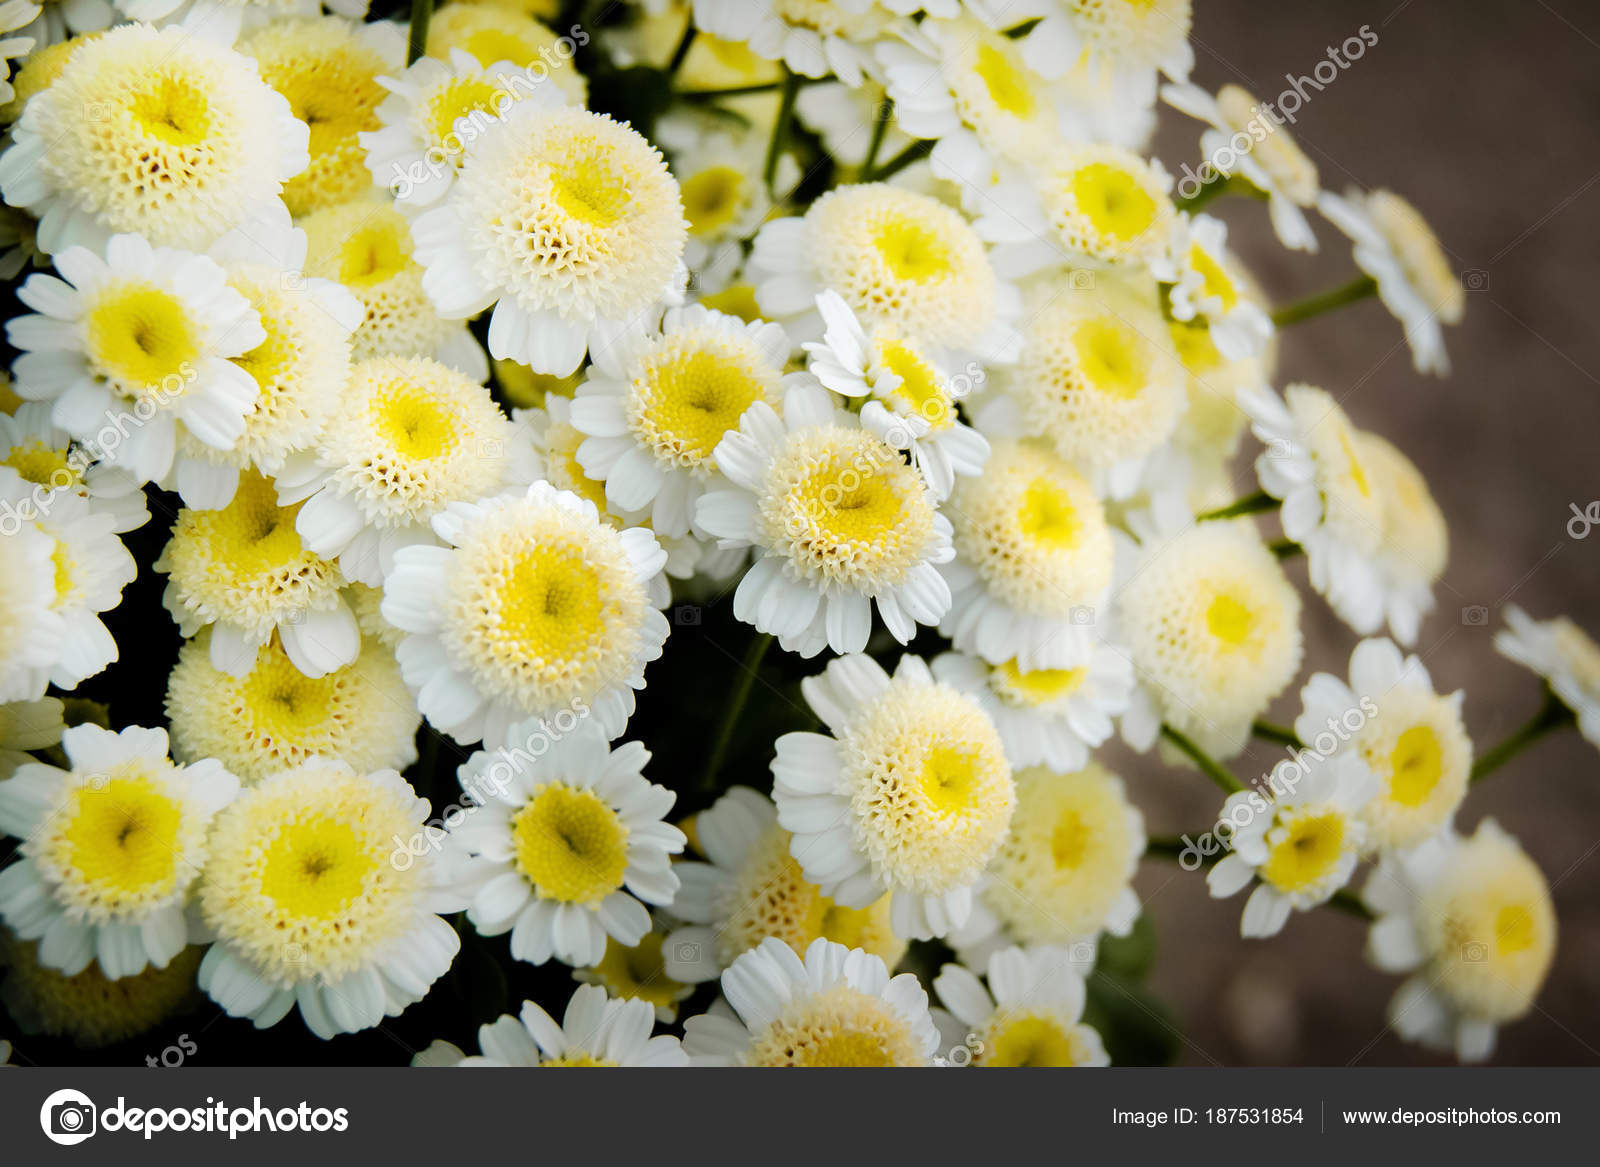 Bouquet Of White Daisies A White Flower With A Yellow Center